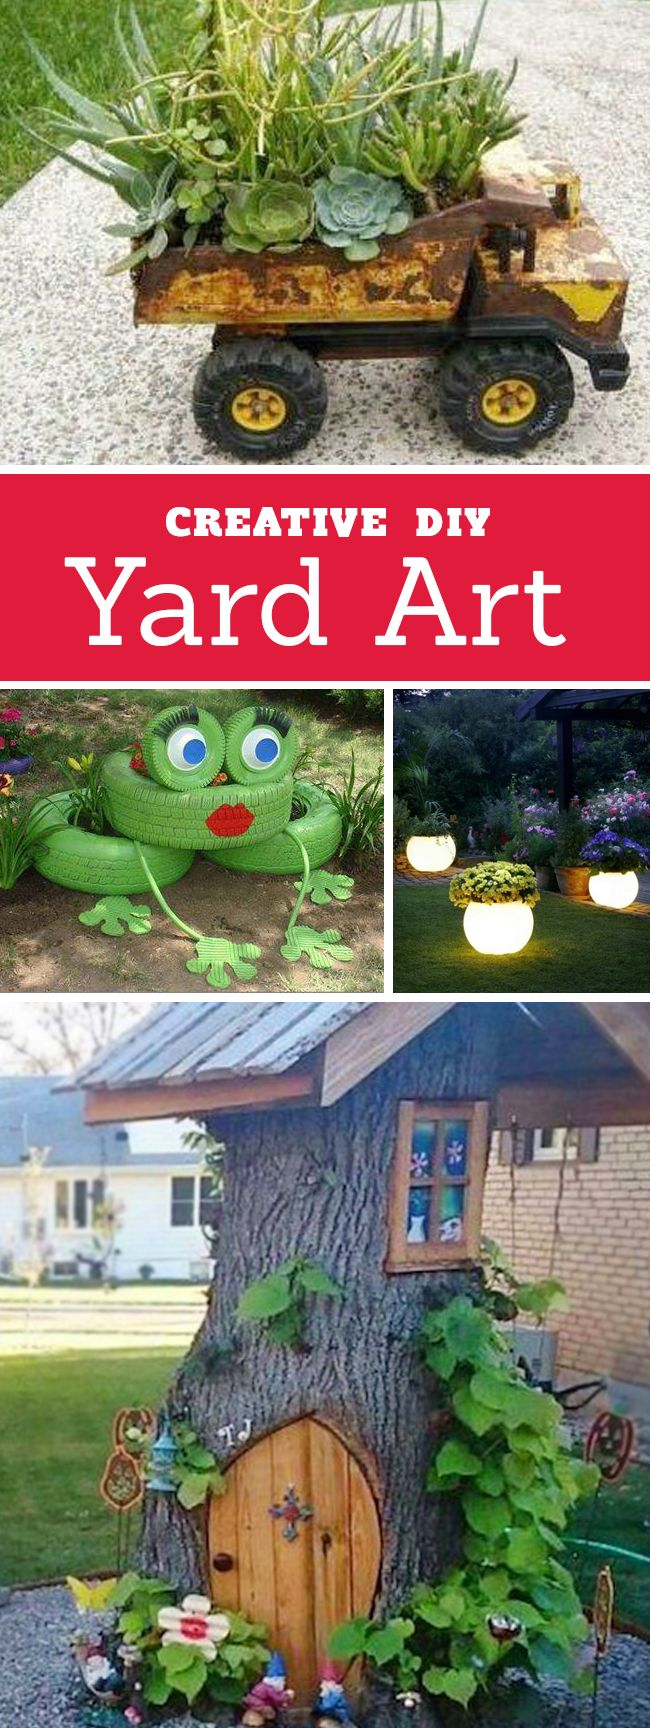 Homemade garden art ideas - 5 Cost Effective Organic Gardening Tricks For A Rewarding Harvest